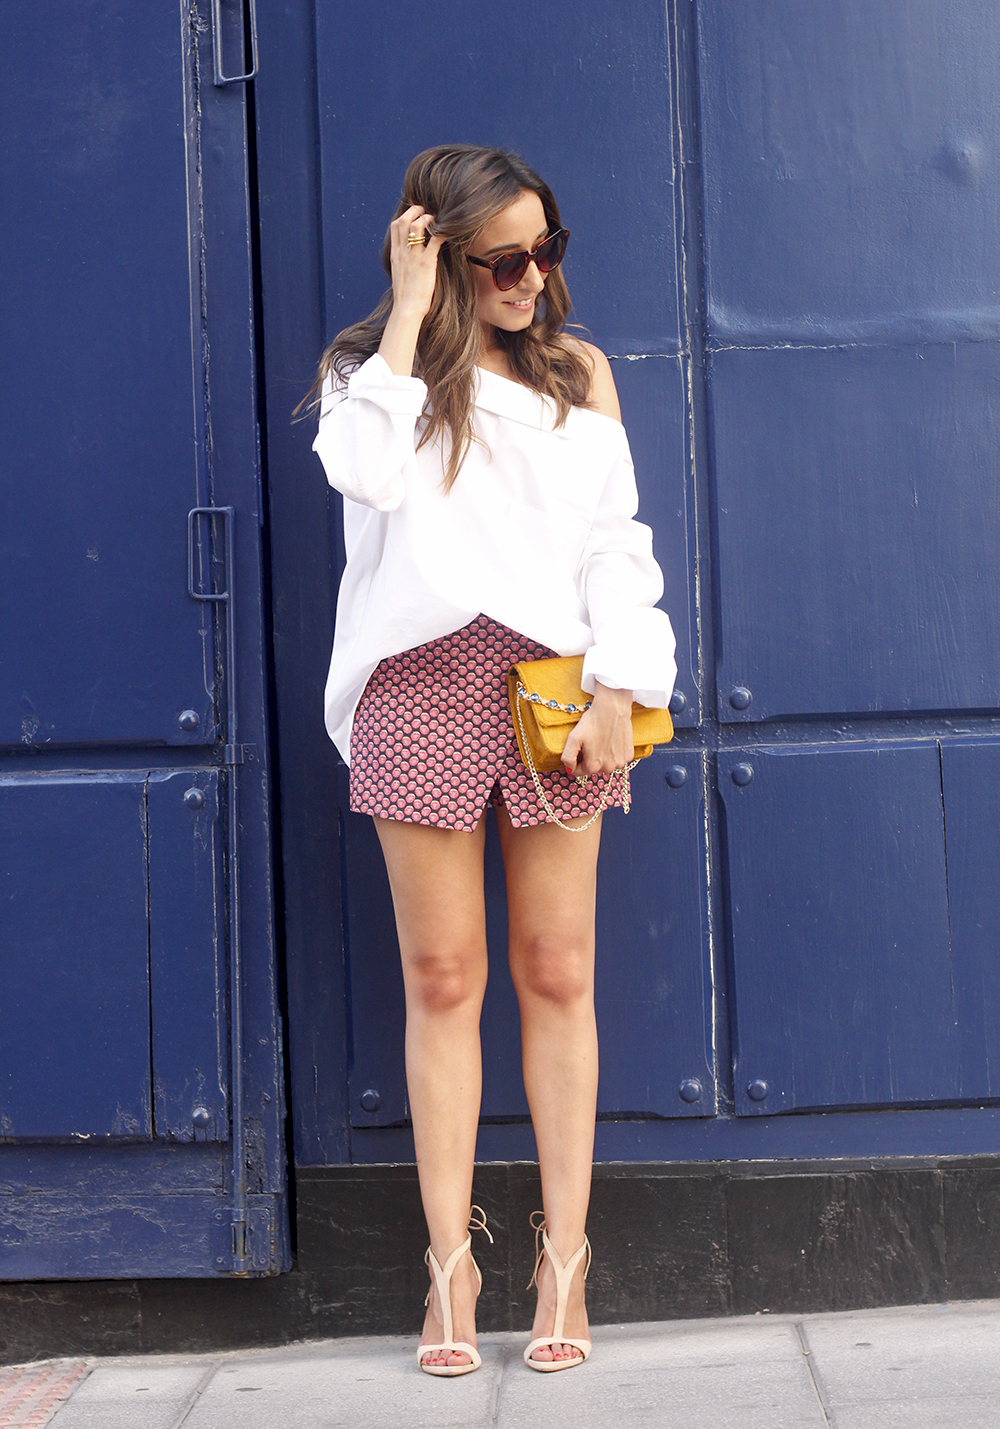 White shirt with printed shorts uterquë bag summer outfit style heels02